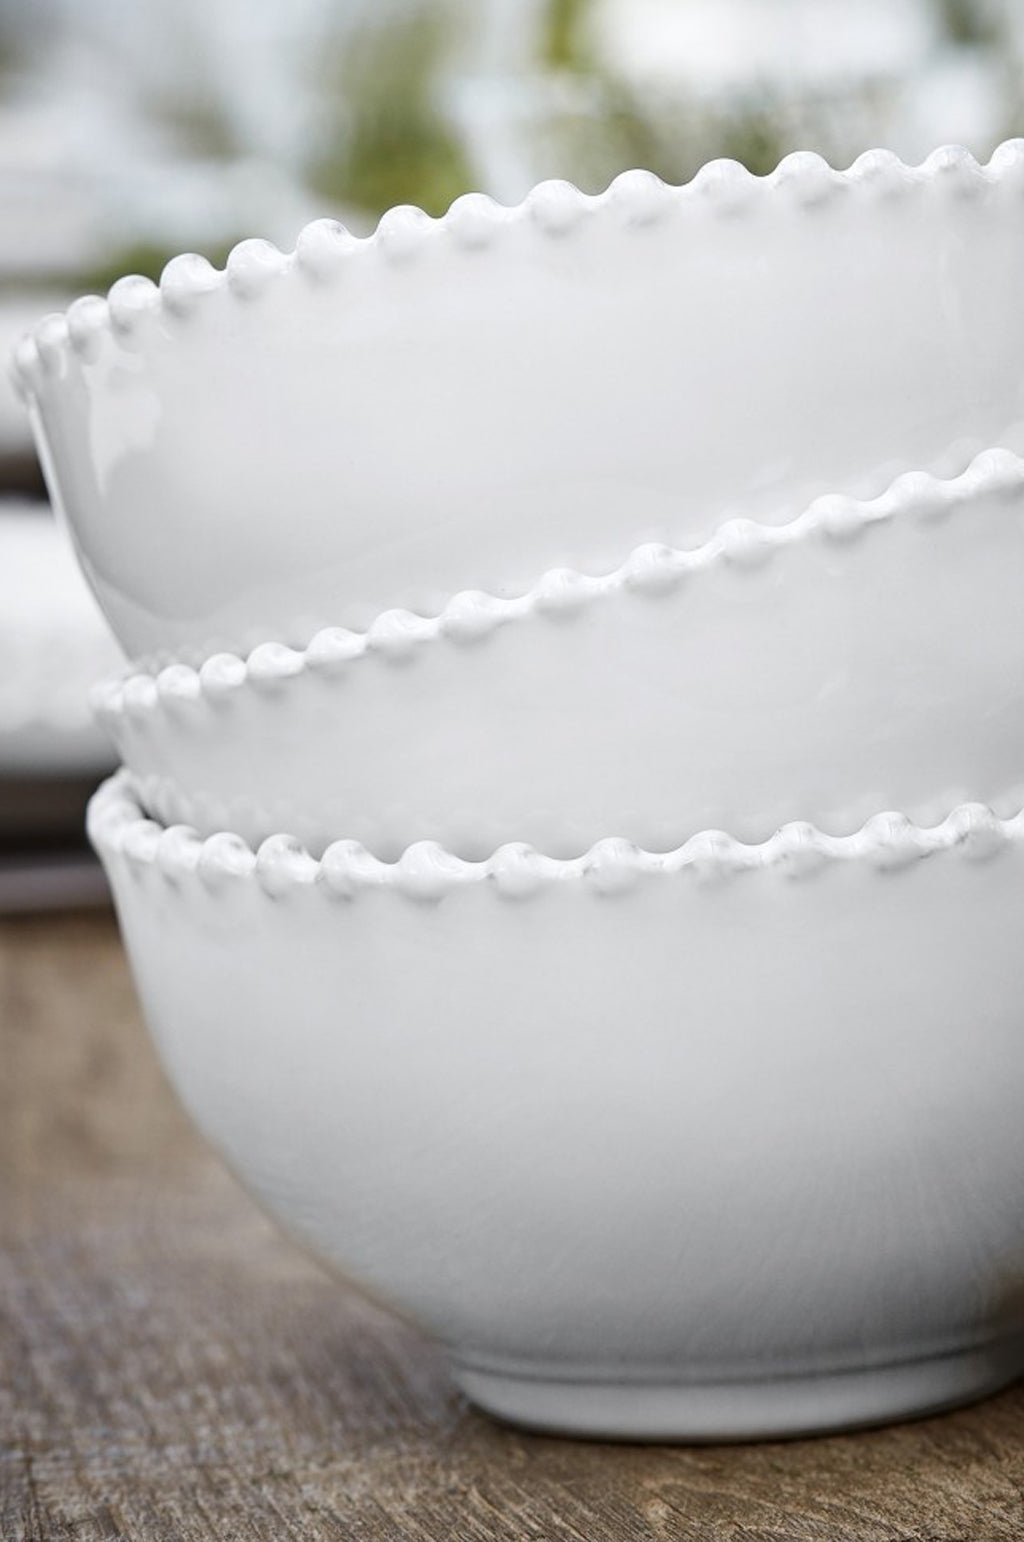 Pearl White Cereal Bowl